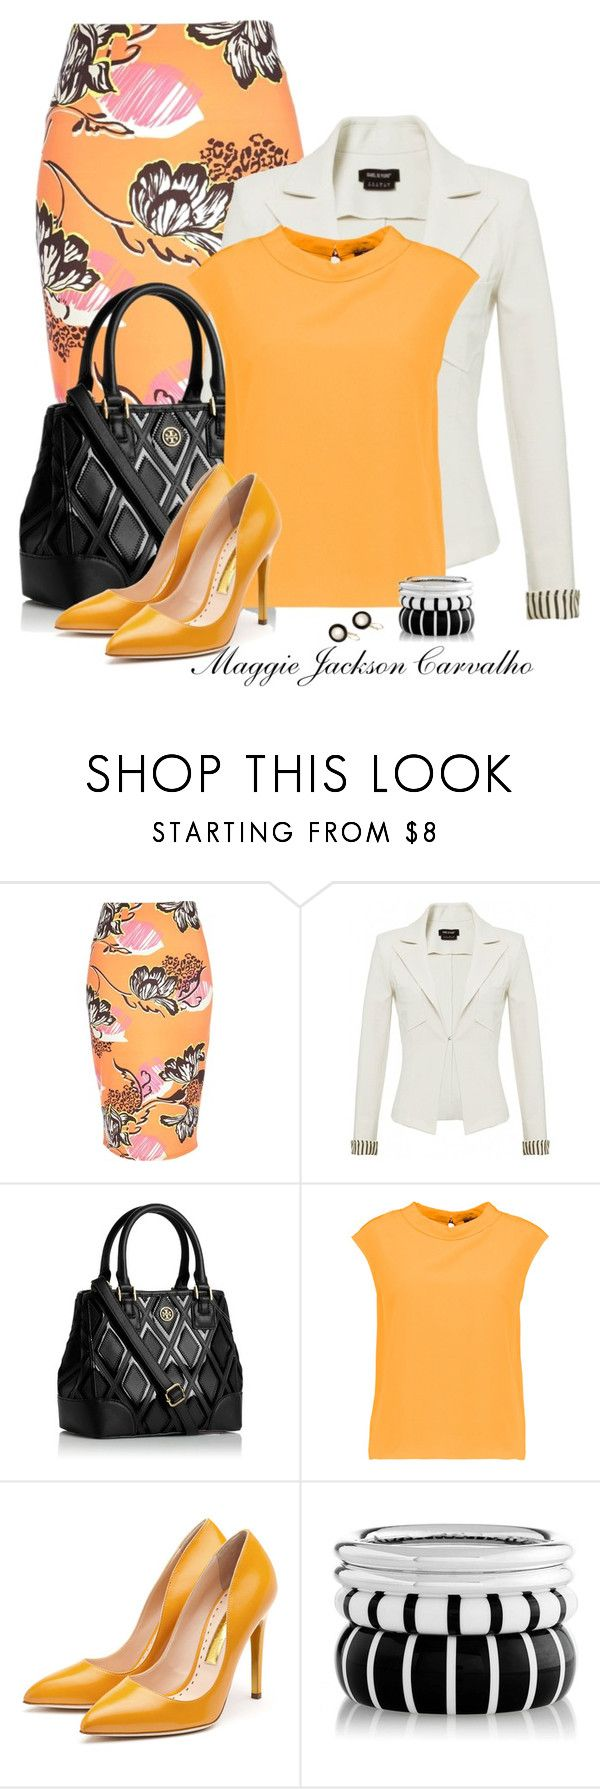 """"""" SPRING FEVER: Colorful Pumps """" by maggie-jackson-carvalho on Polyvore featuring River Island, Isabel de Pedro, Tory Burch, Raoul, Rupert Sanderson and Wallis"""